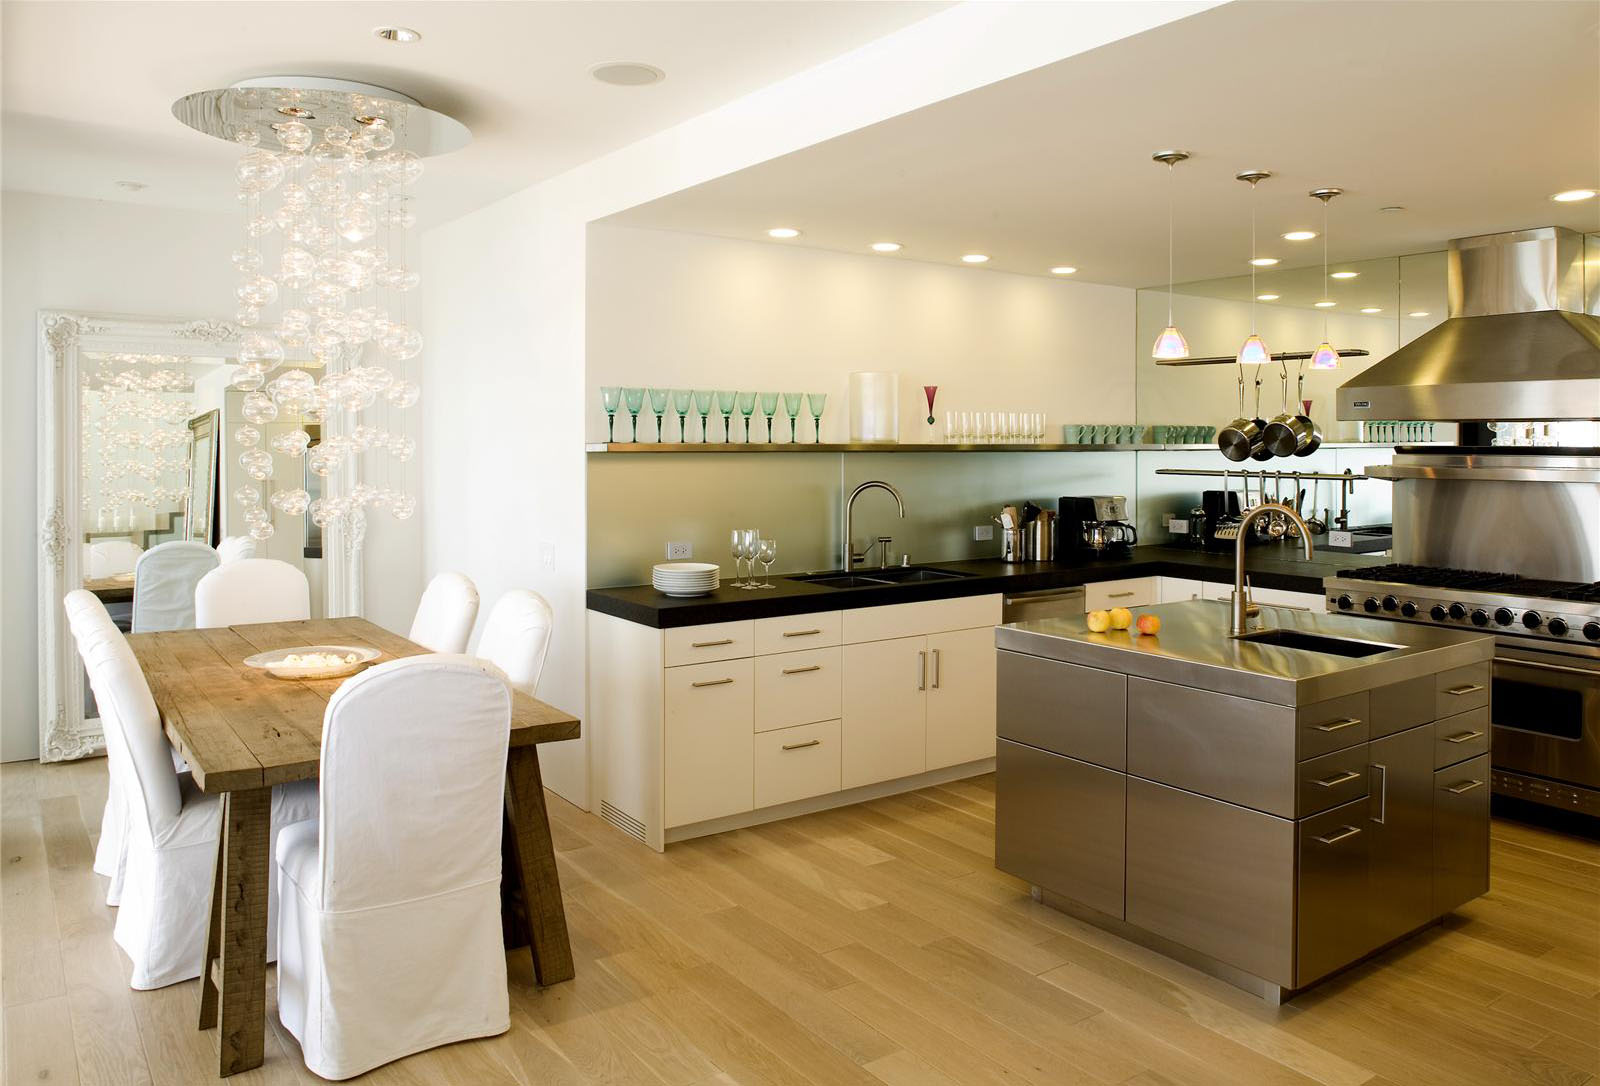 Open contemporary kitchen design ideas idesignarch for Modern kitchen designs gallery